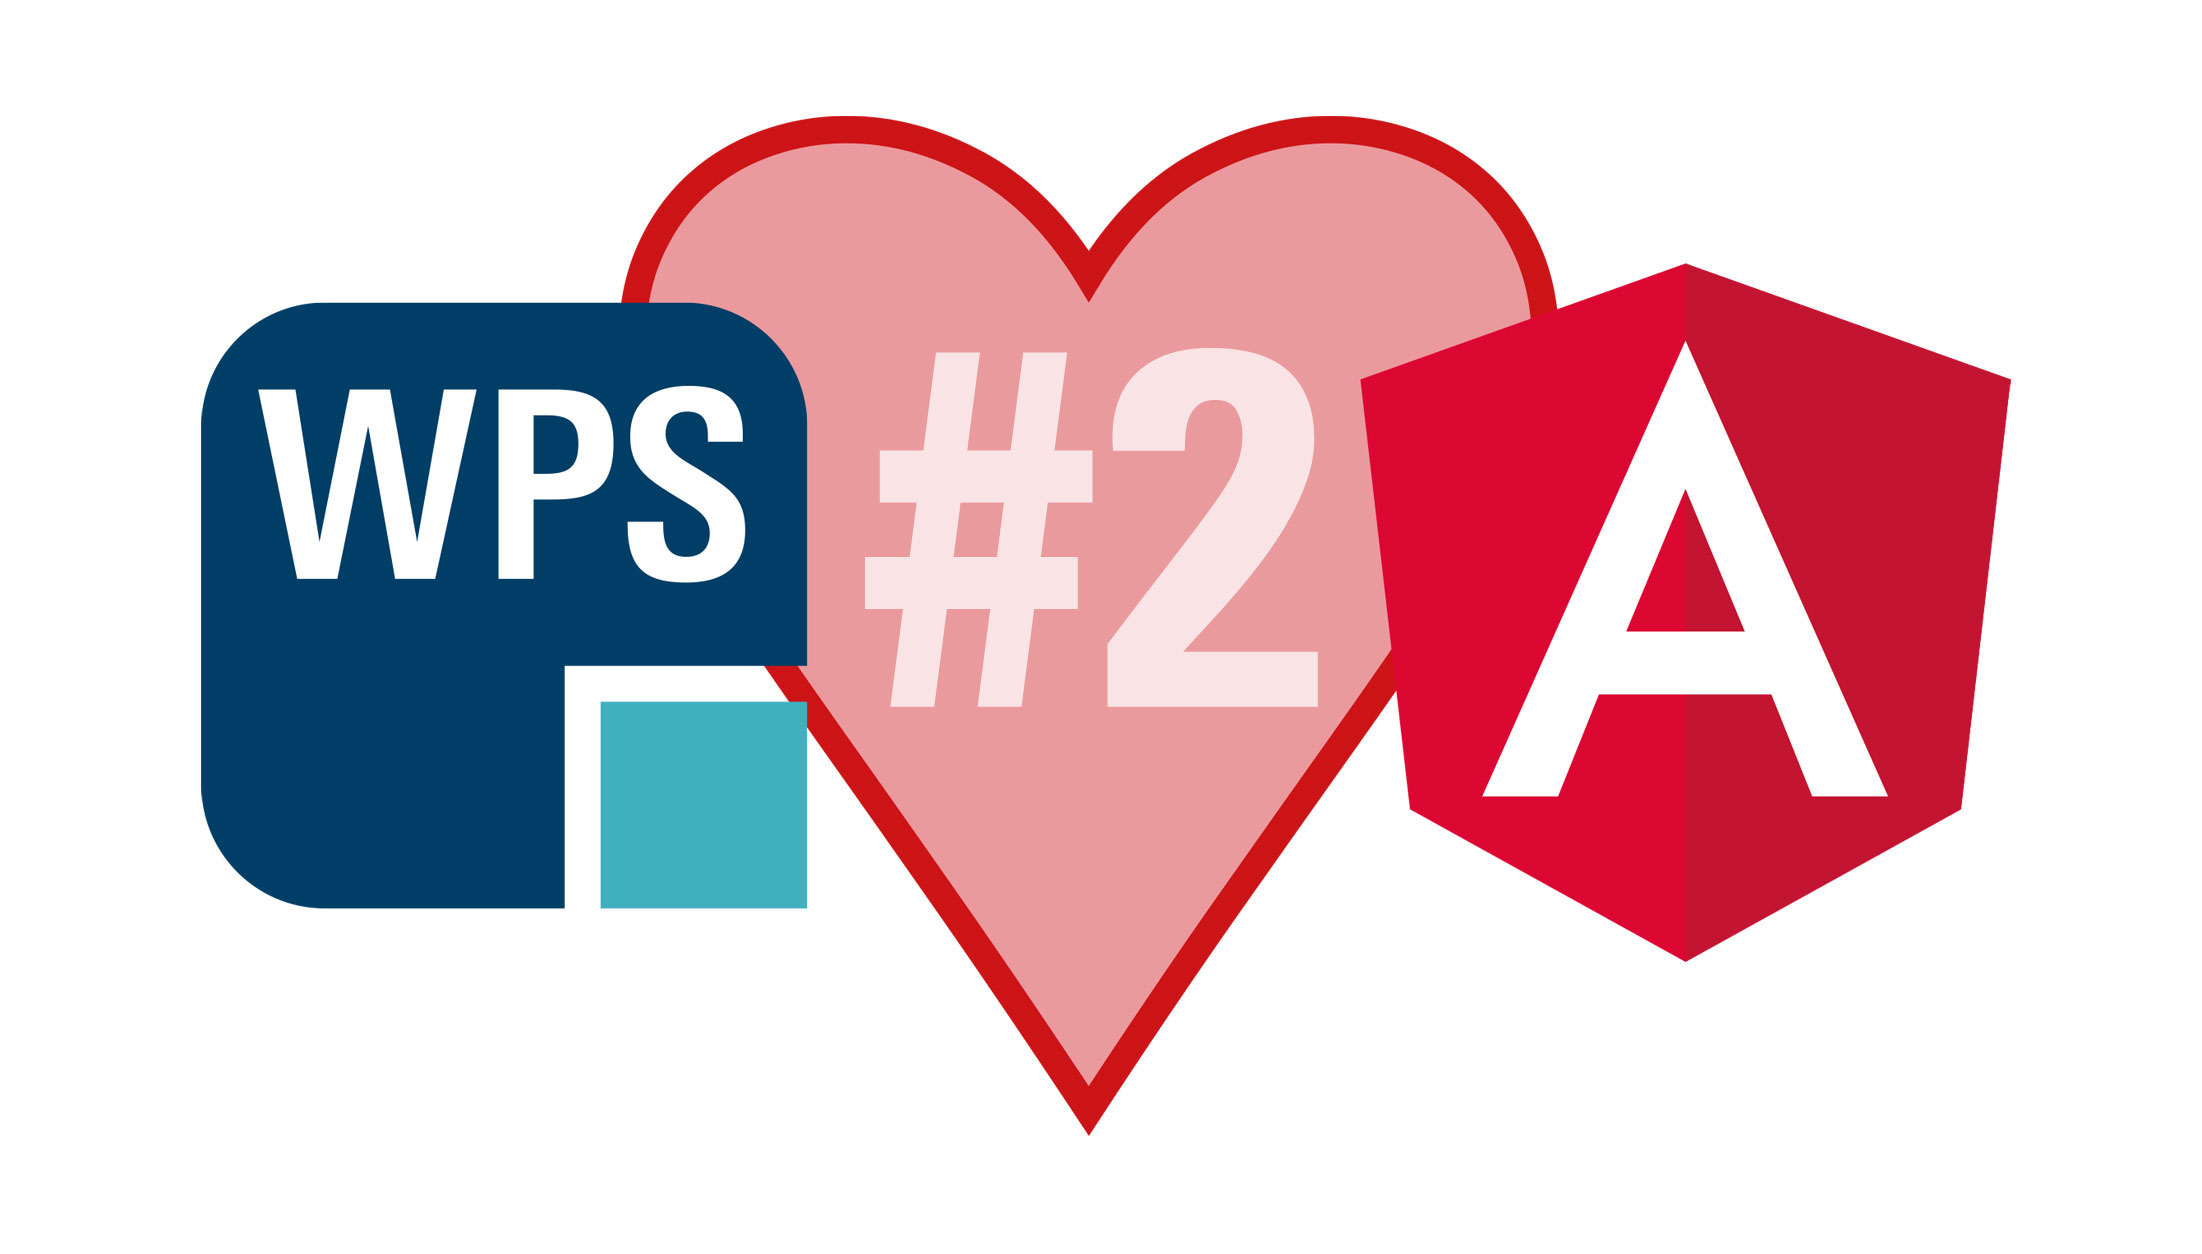 WPS loves Angular visual